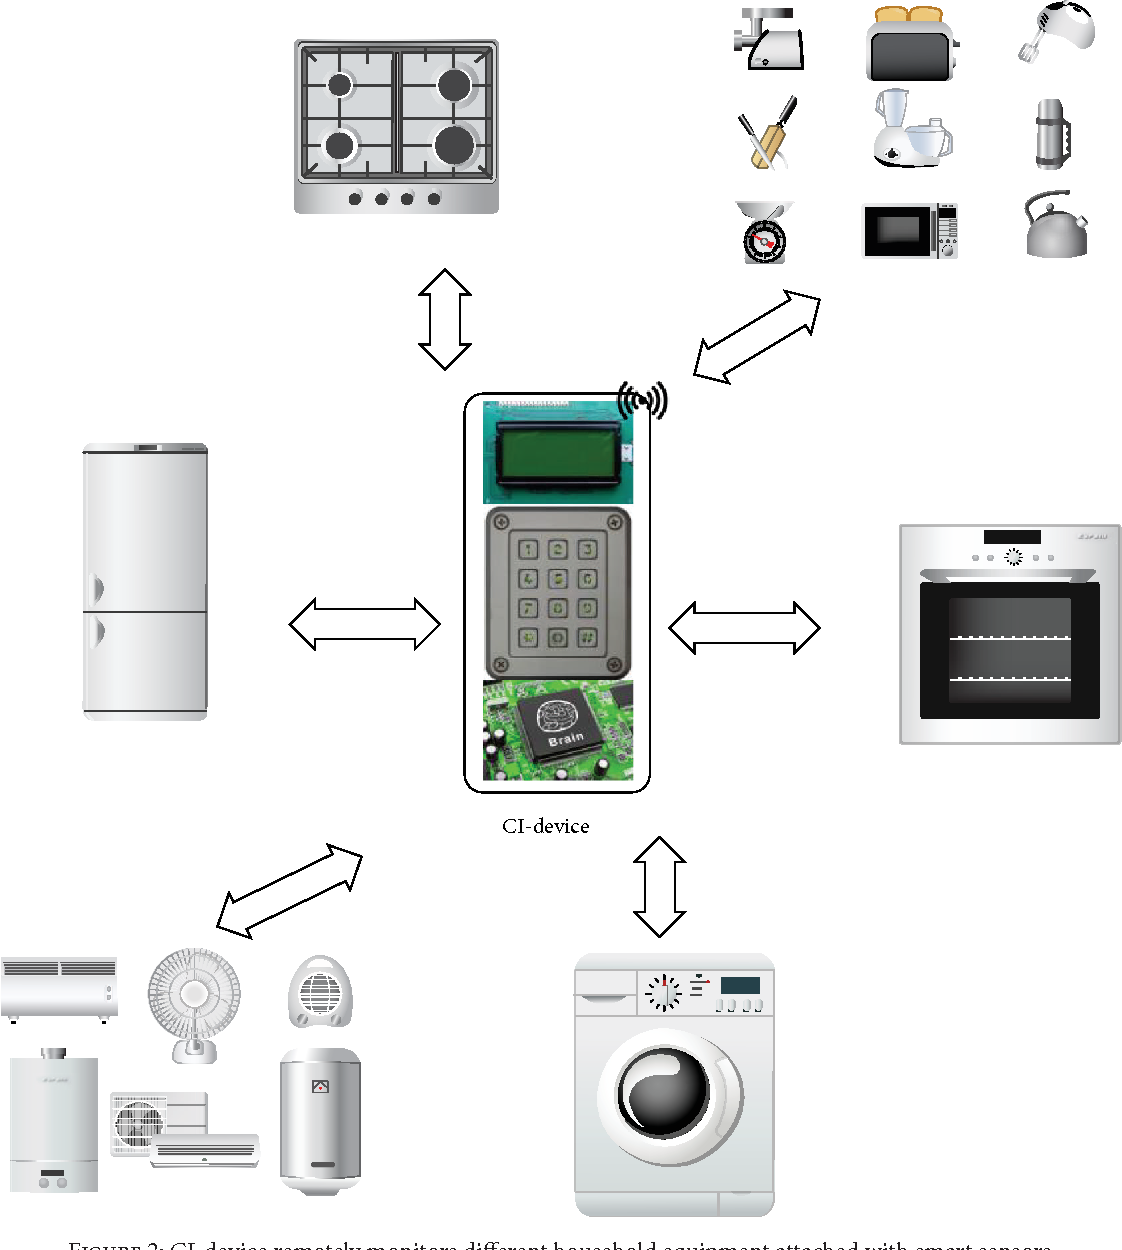 Figure 2: CI-device remotely monitors different household equipment attached with smart sensors.